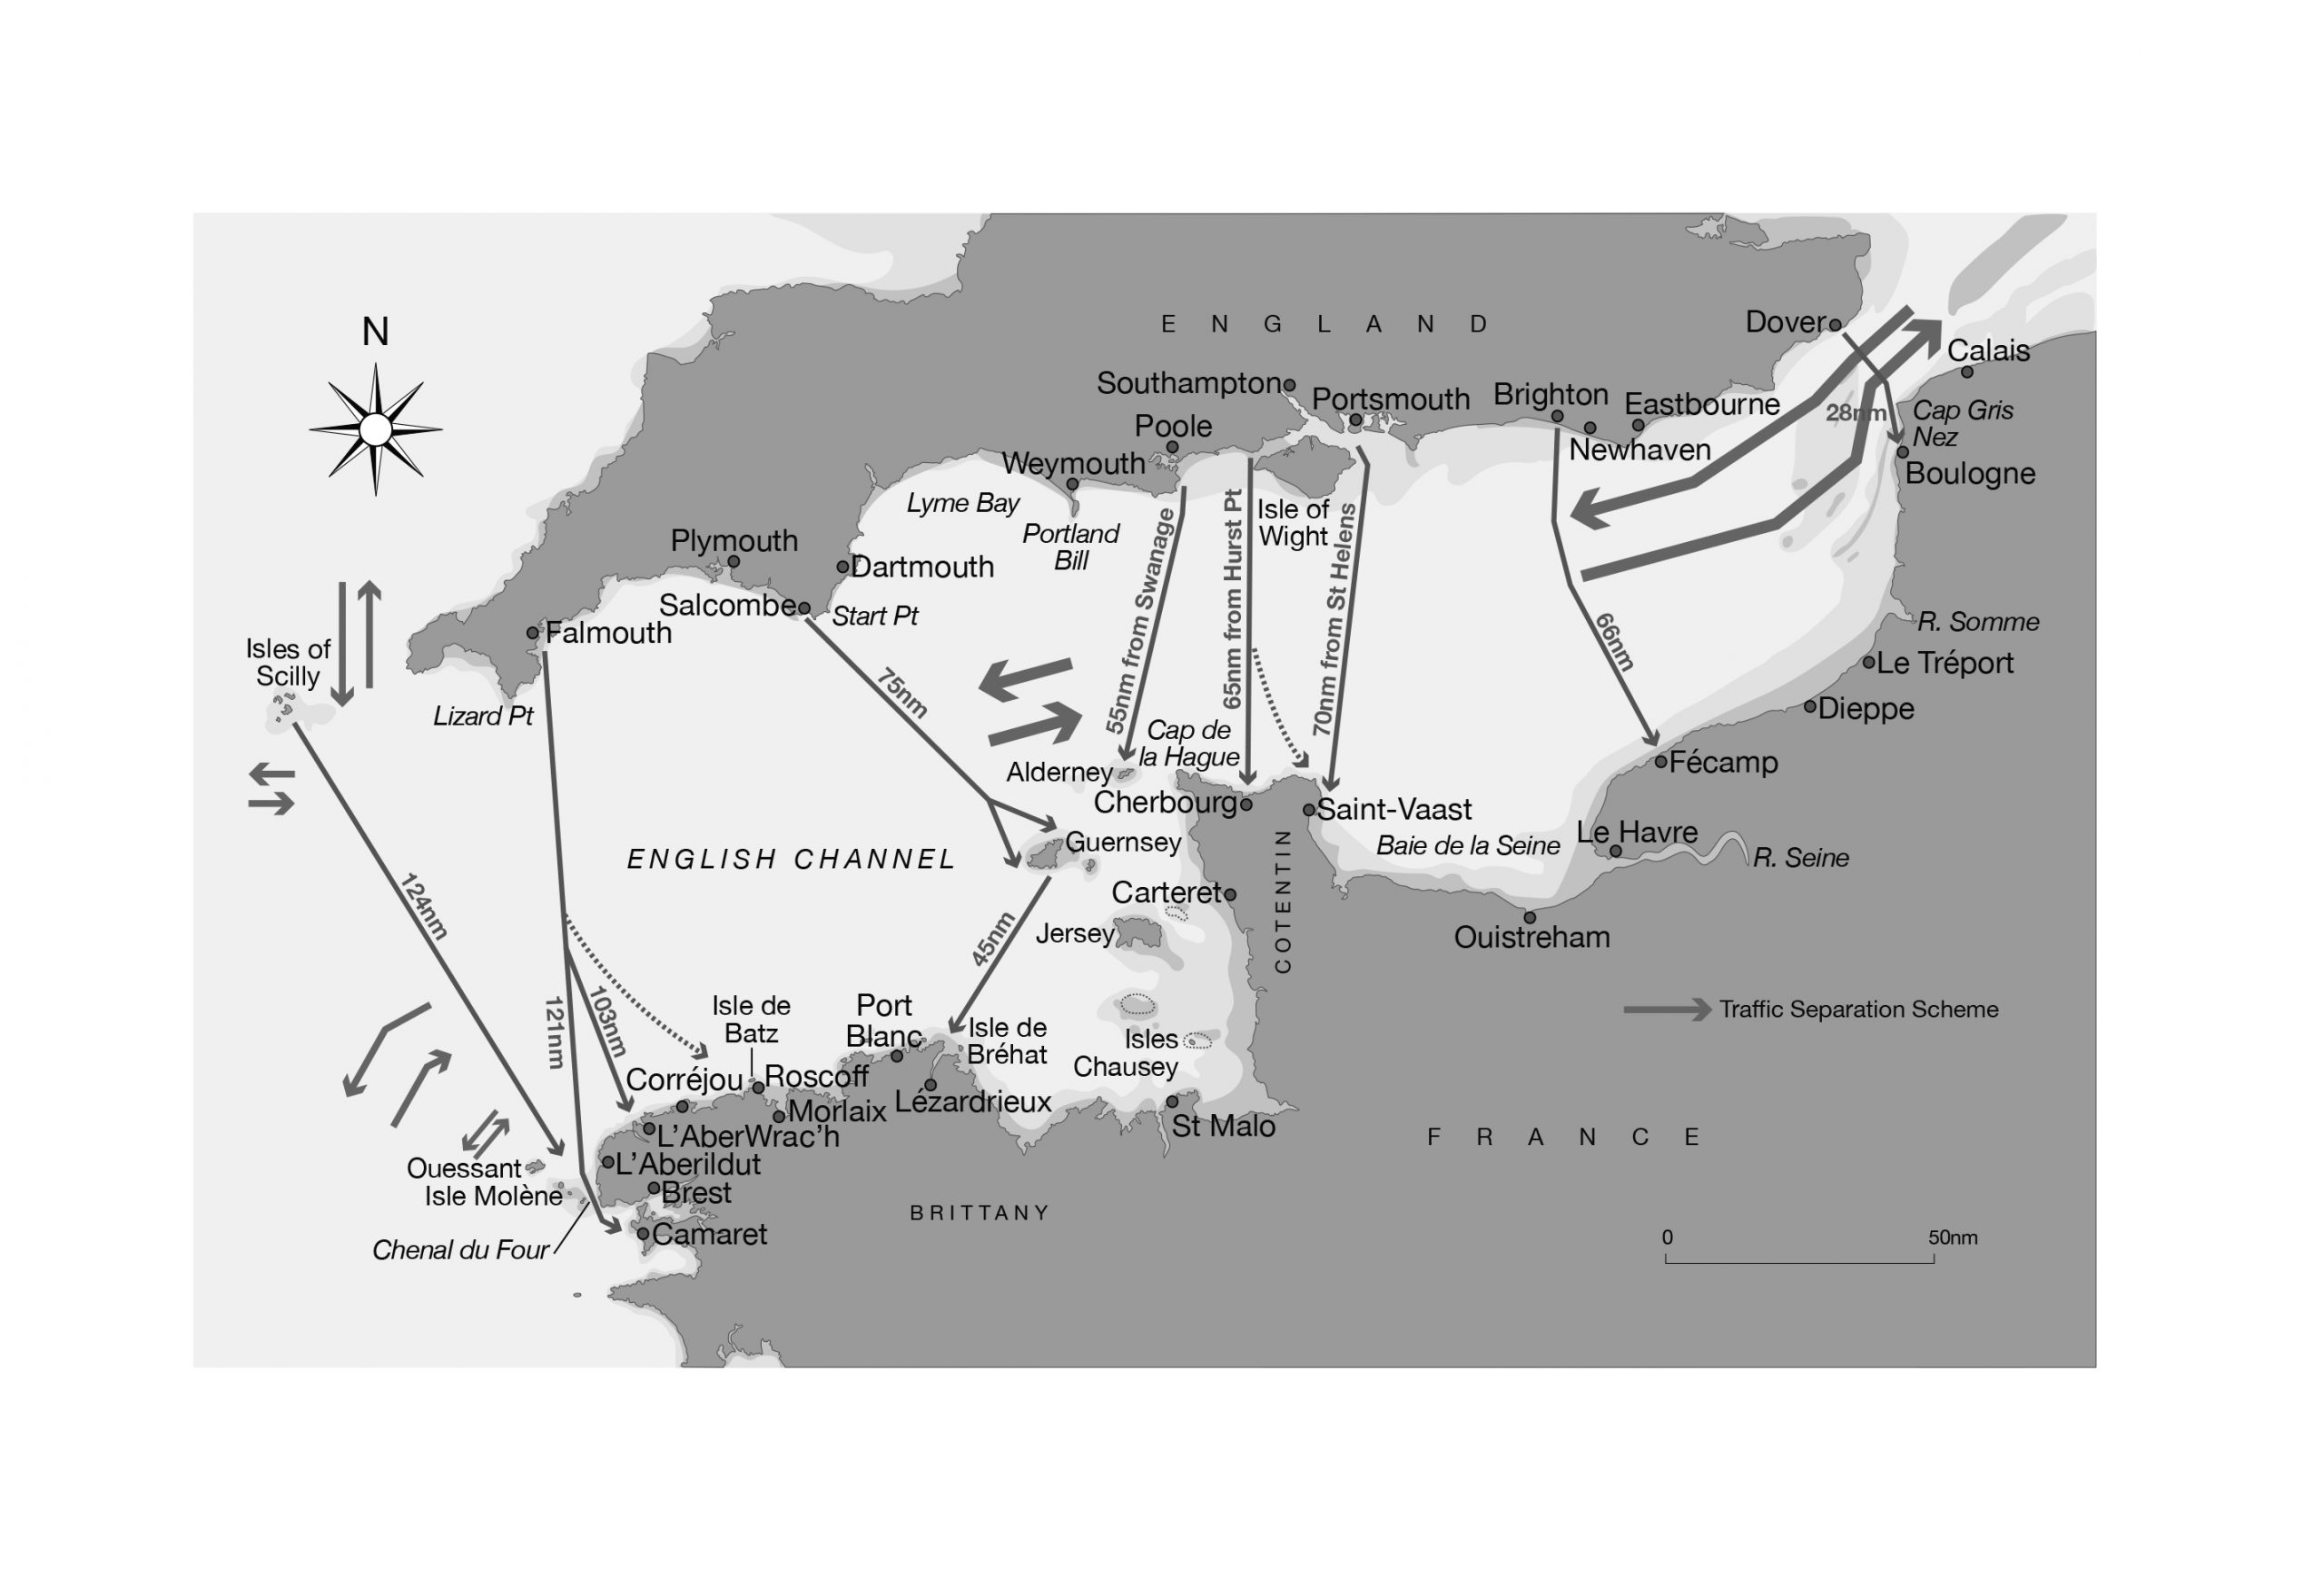 Routes for crossing the English Channel to France